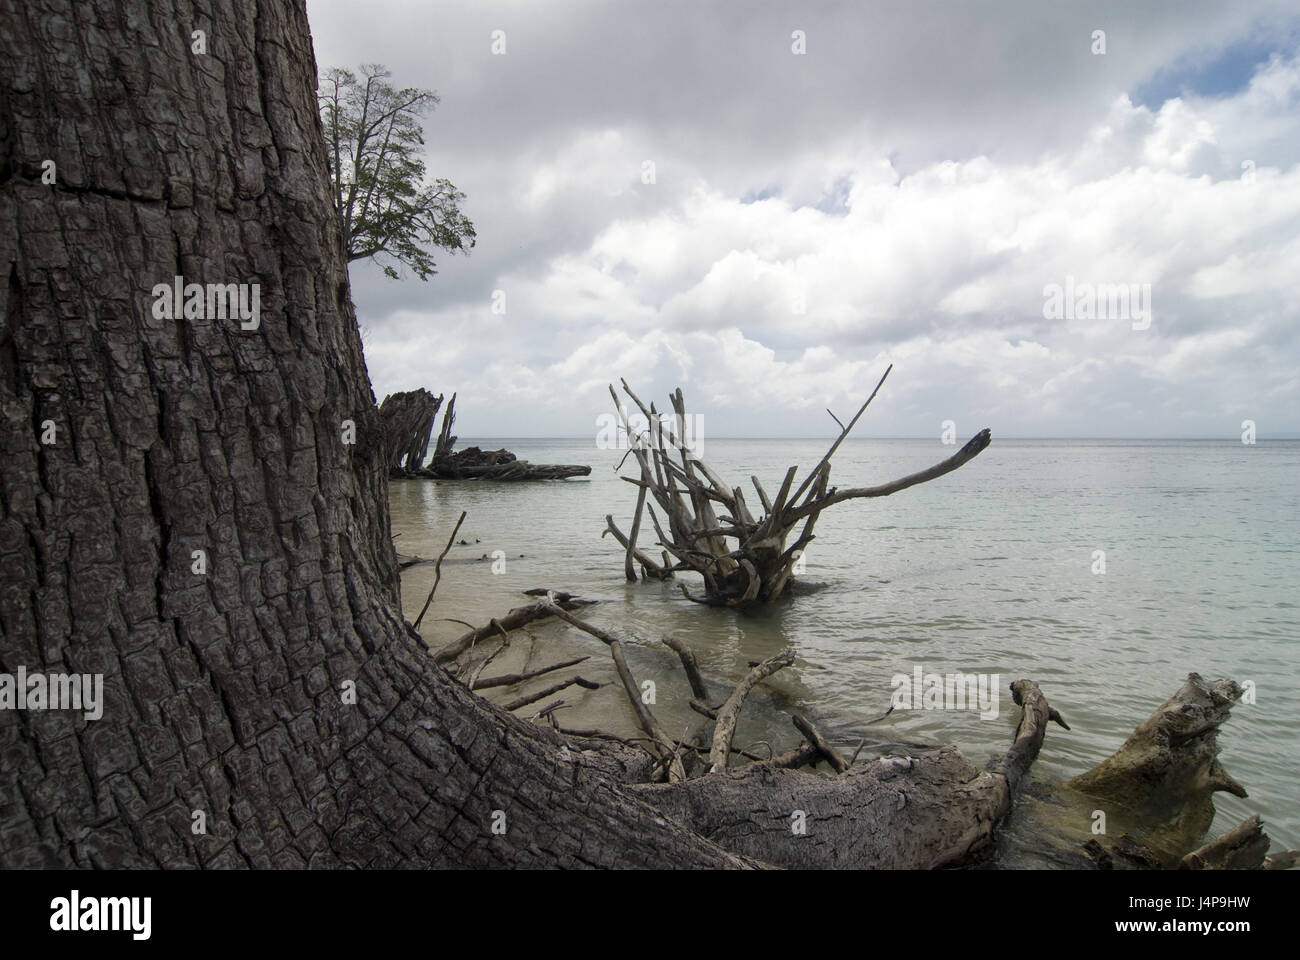 Trunk, uproots, trees, coast, Indian ocean, Havelock Insel, Andamanen, India, - Stock Image